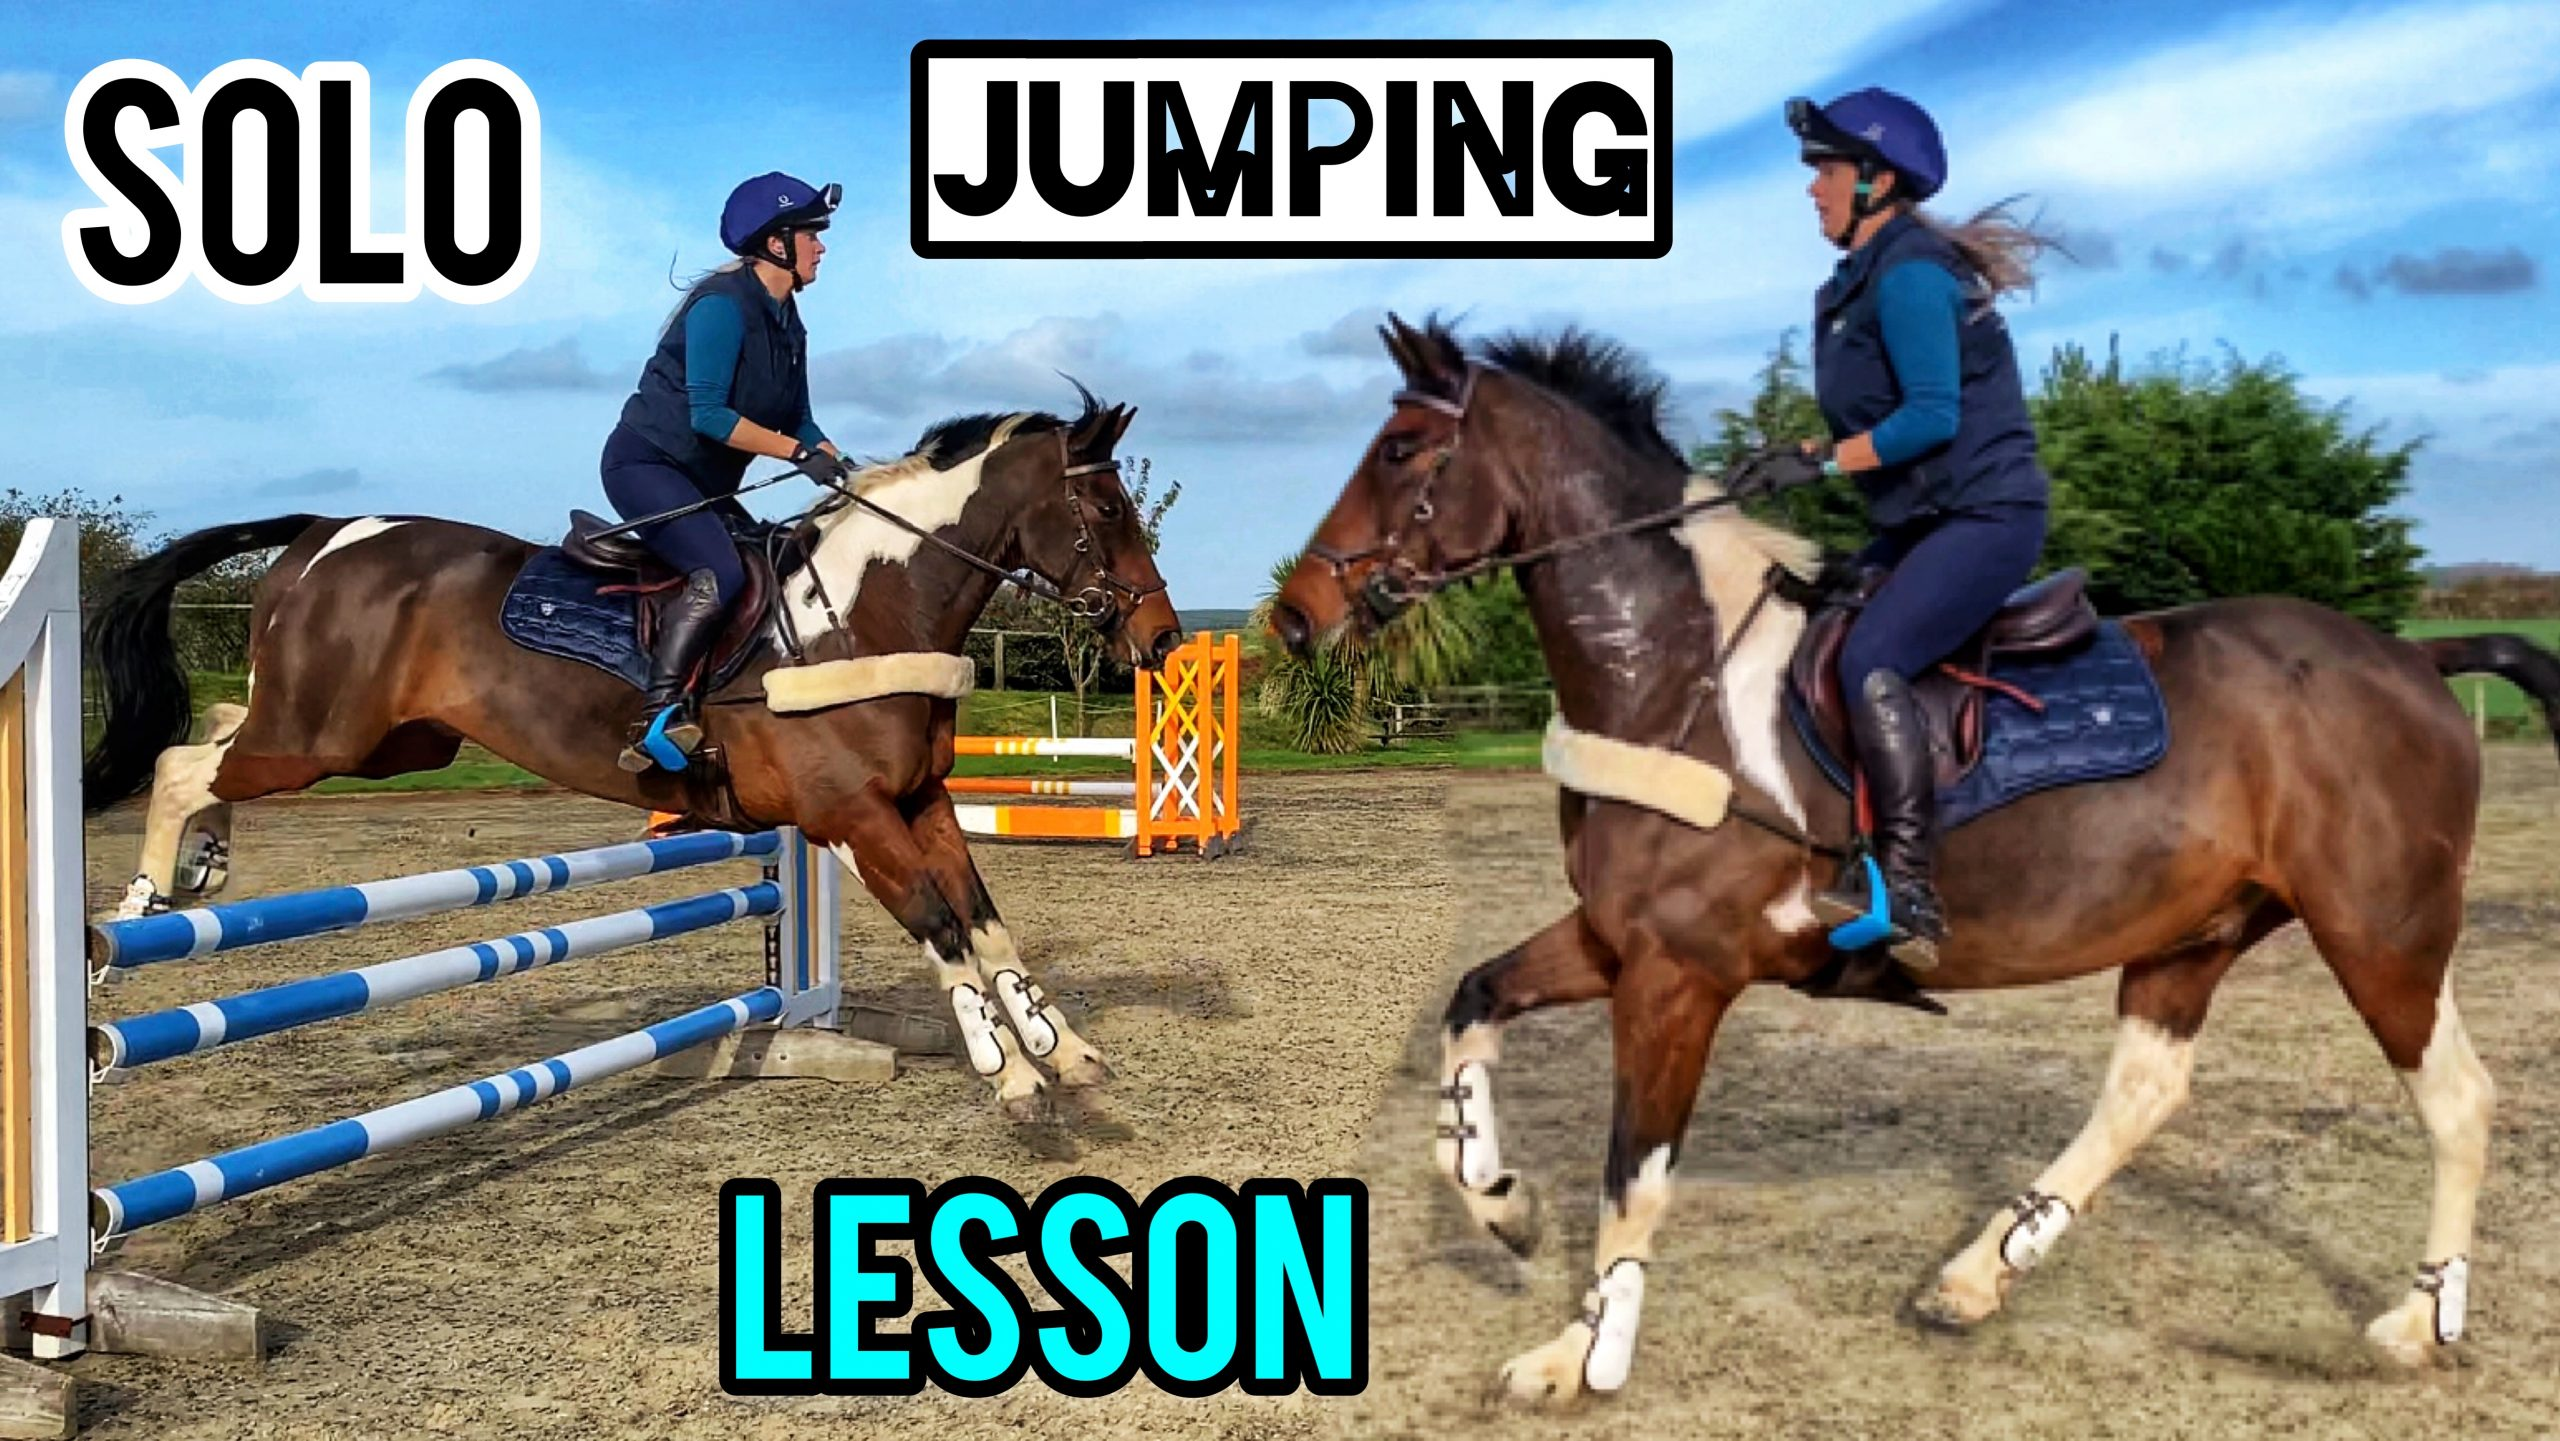 JUMPING VLOG | My first ever solo jump lesson | Working on Confidence & Competitiveness